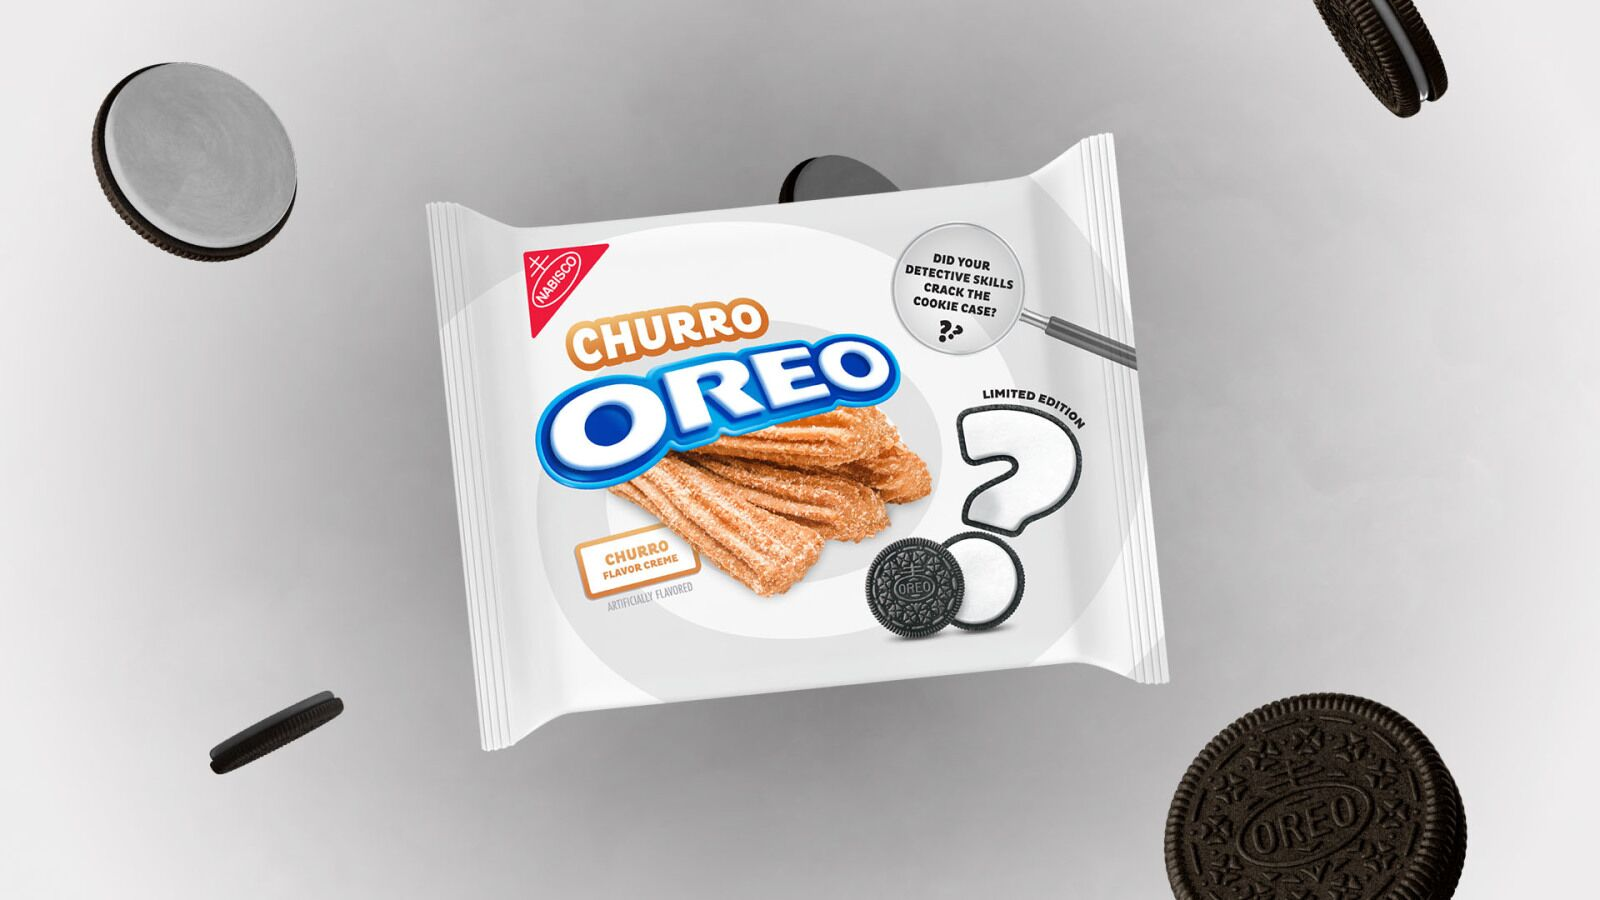 Churro OREO is here, but did you correctly solve the mystery?